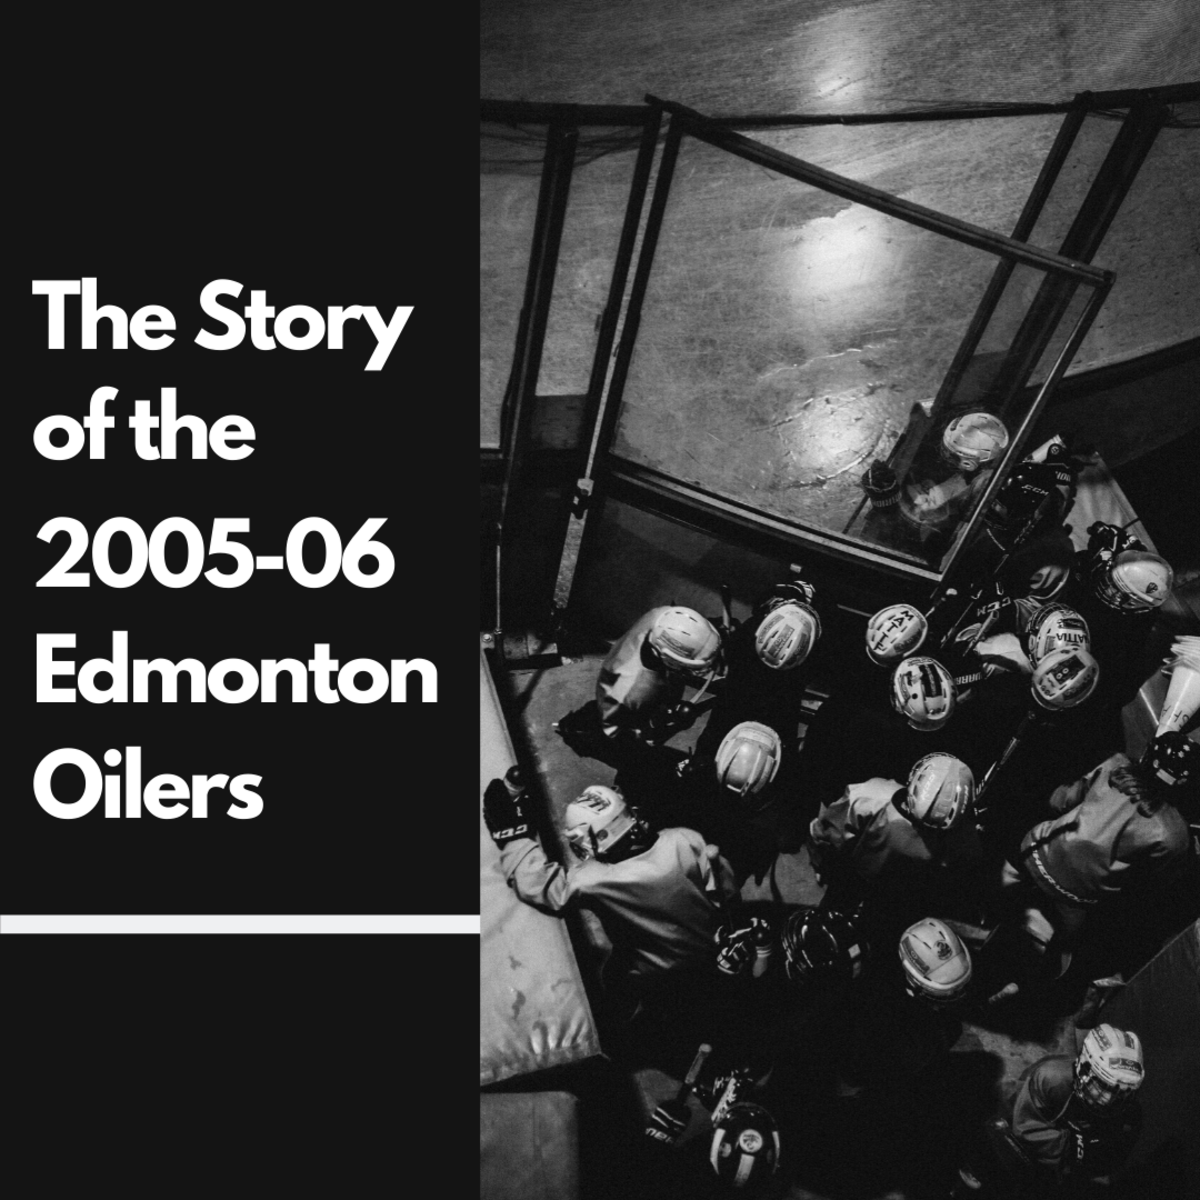 Two Minutes Never Looked so Good: The Story of the 2005-06 Edmonton Oilers